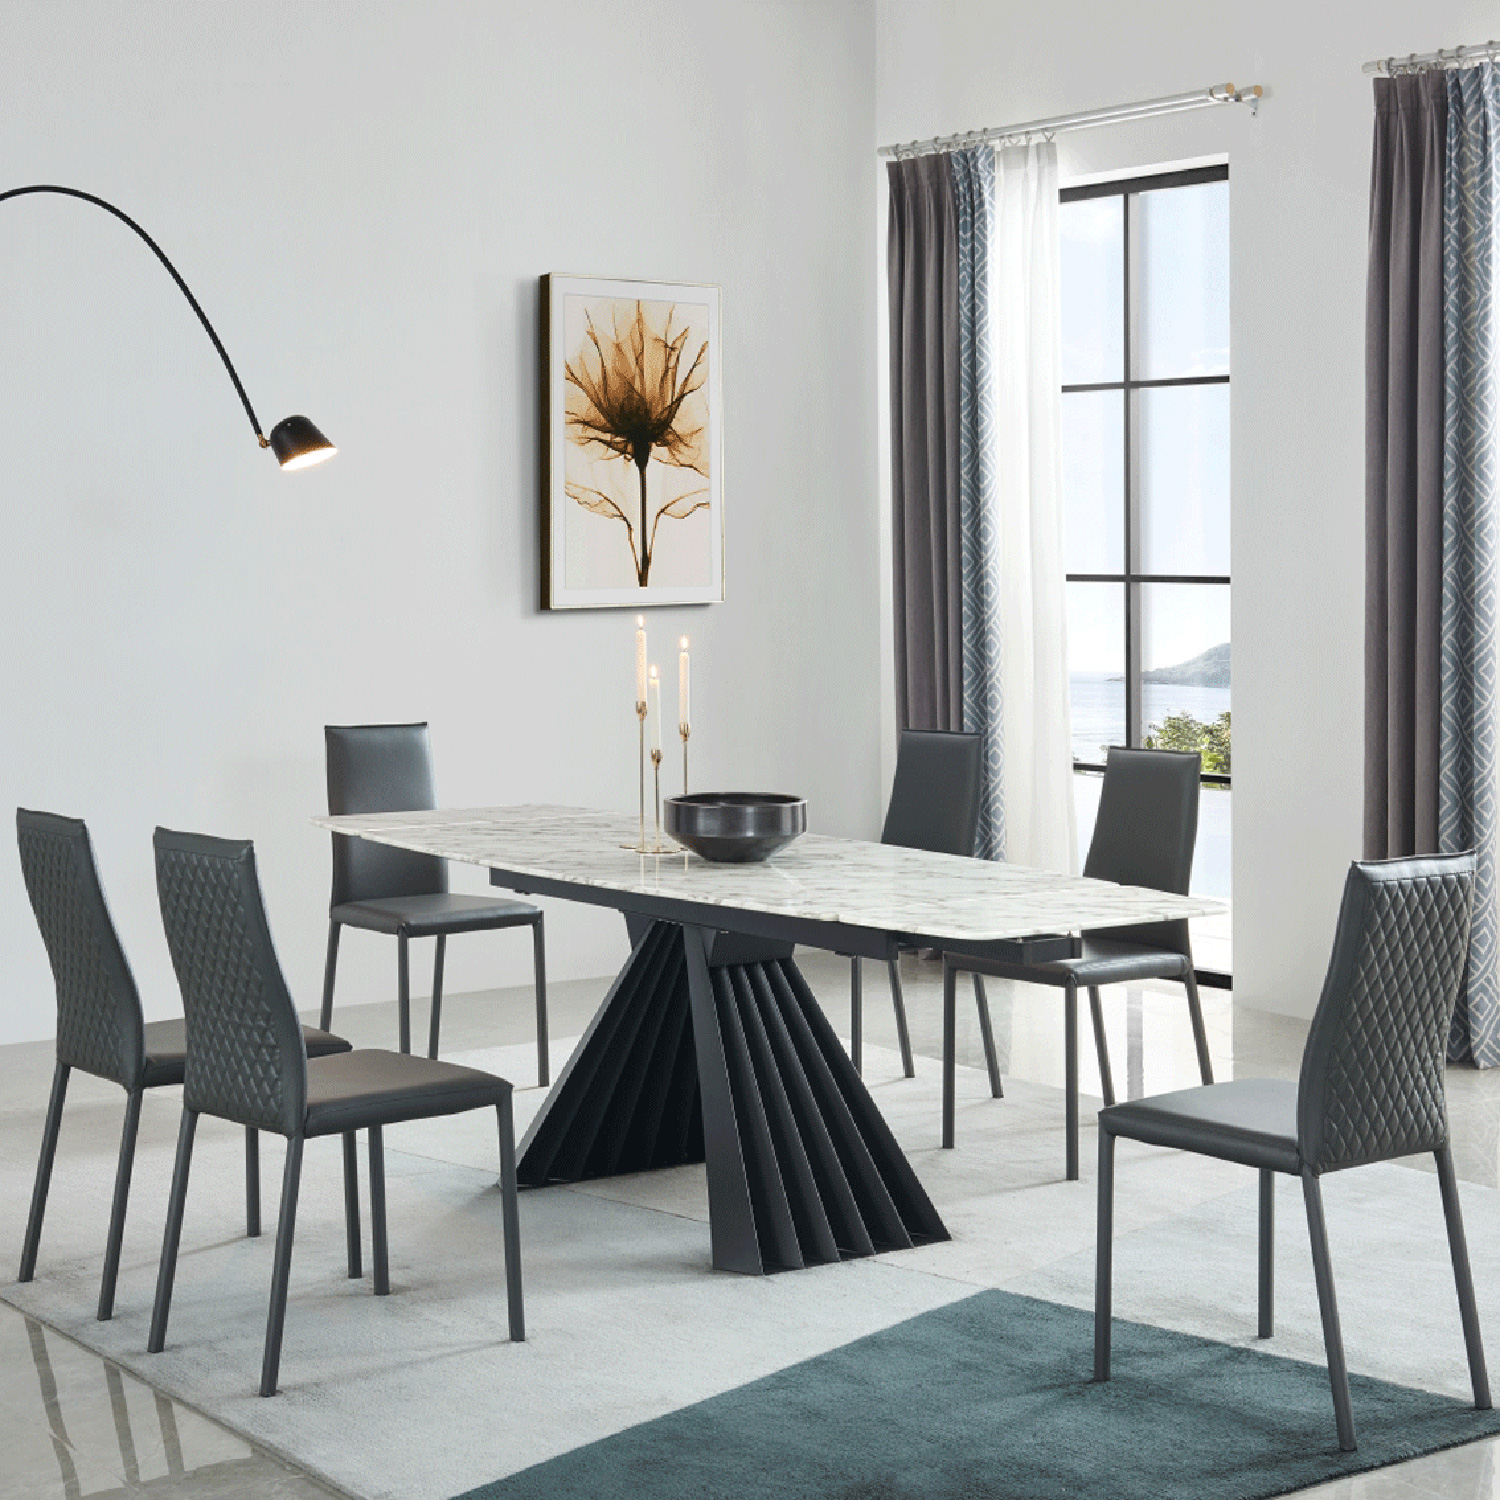 Esf Imports 152diningtable 152 71 Extension Dining Table In Marble Glass Steel